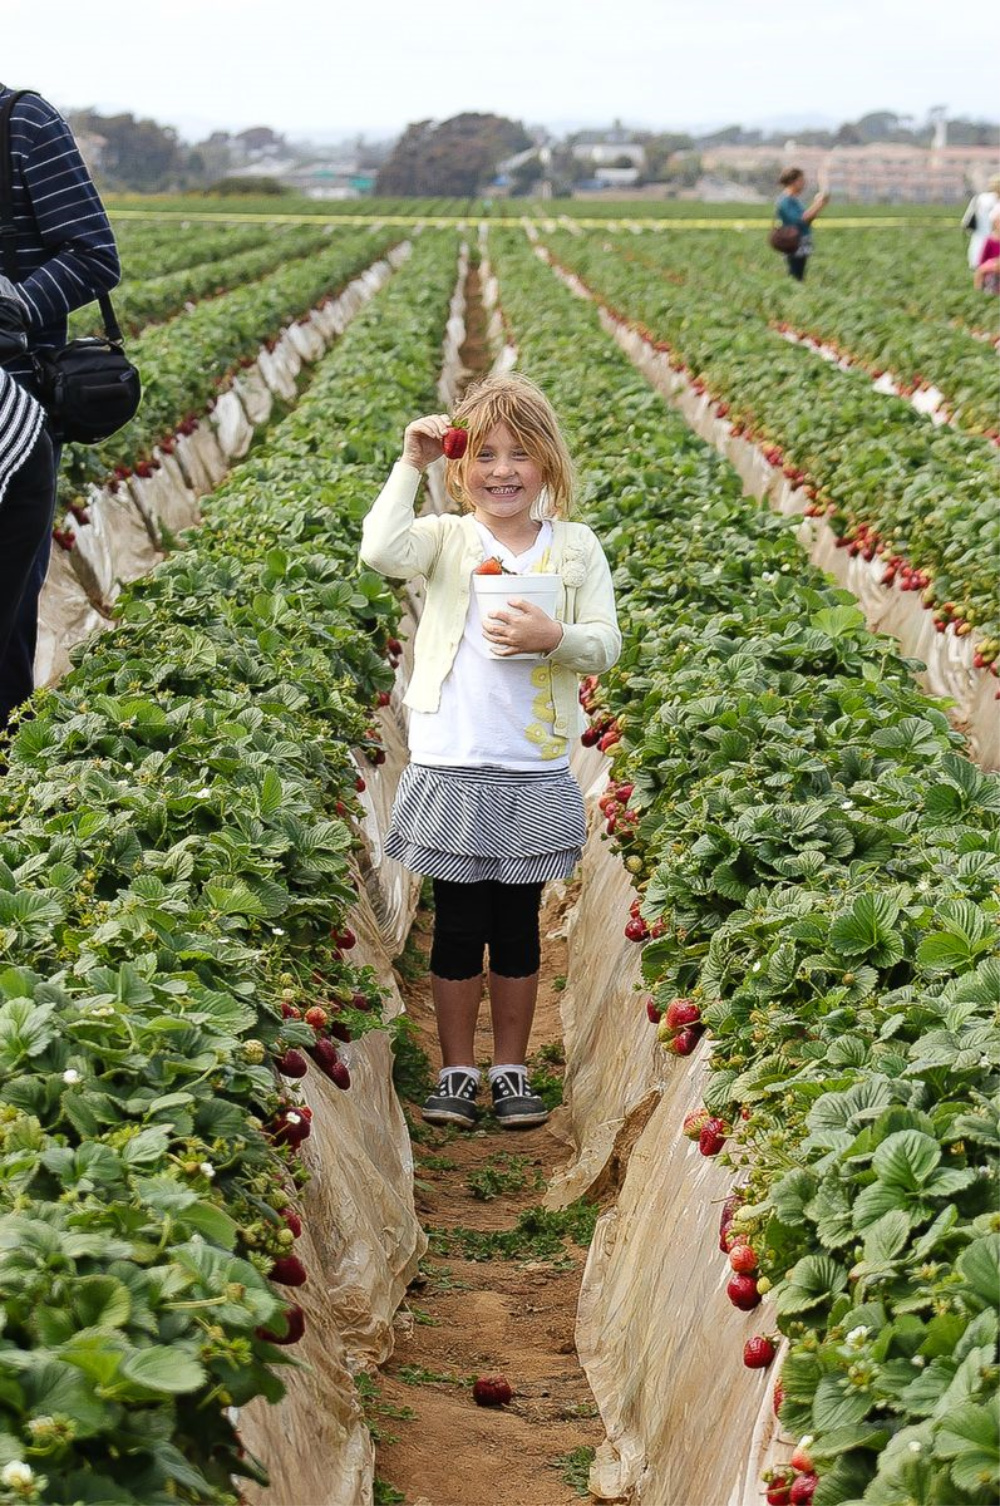 a girl picking strawberries at a strawberry field